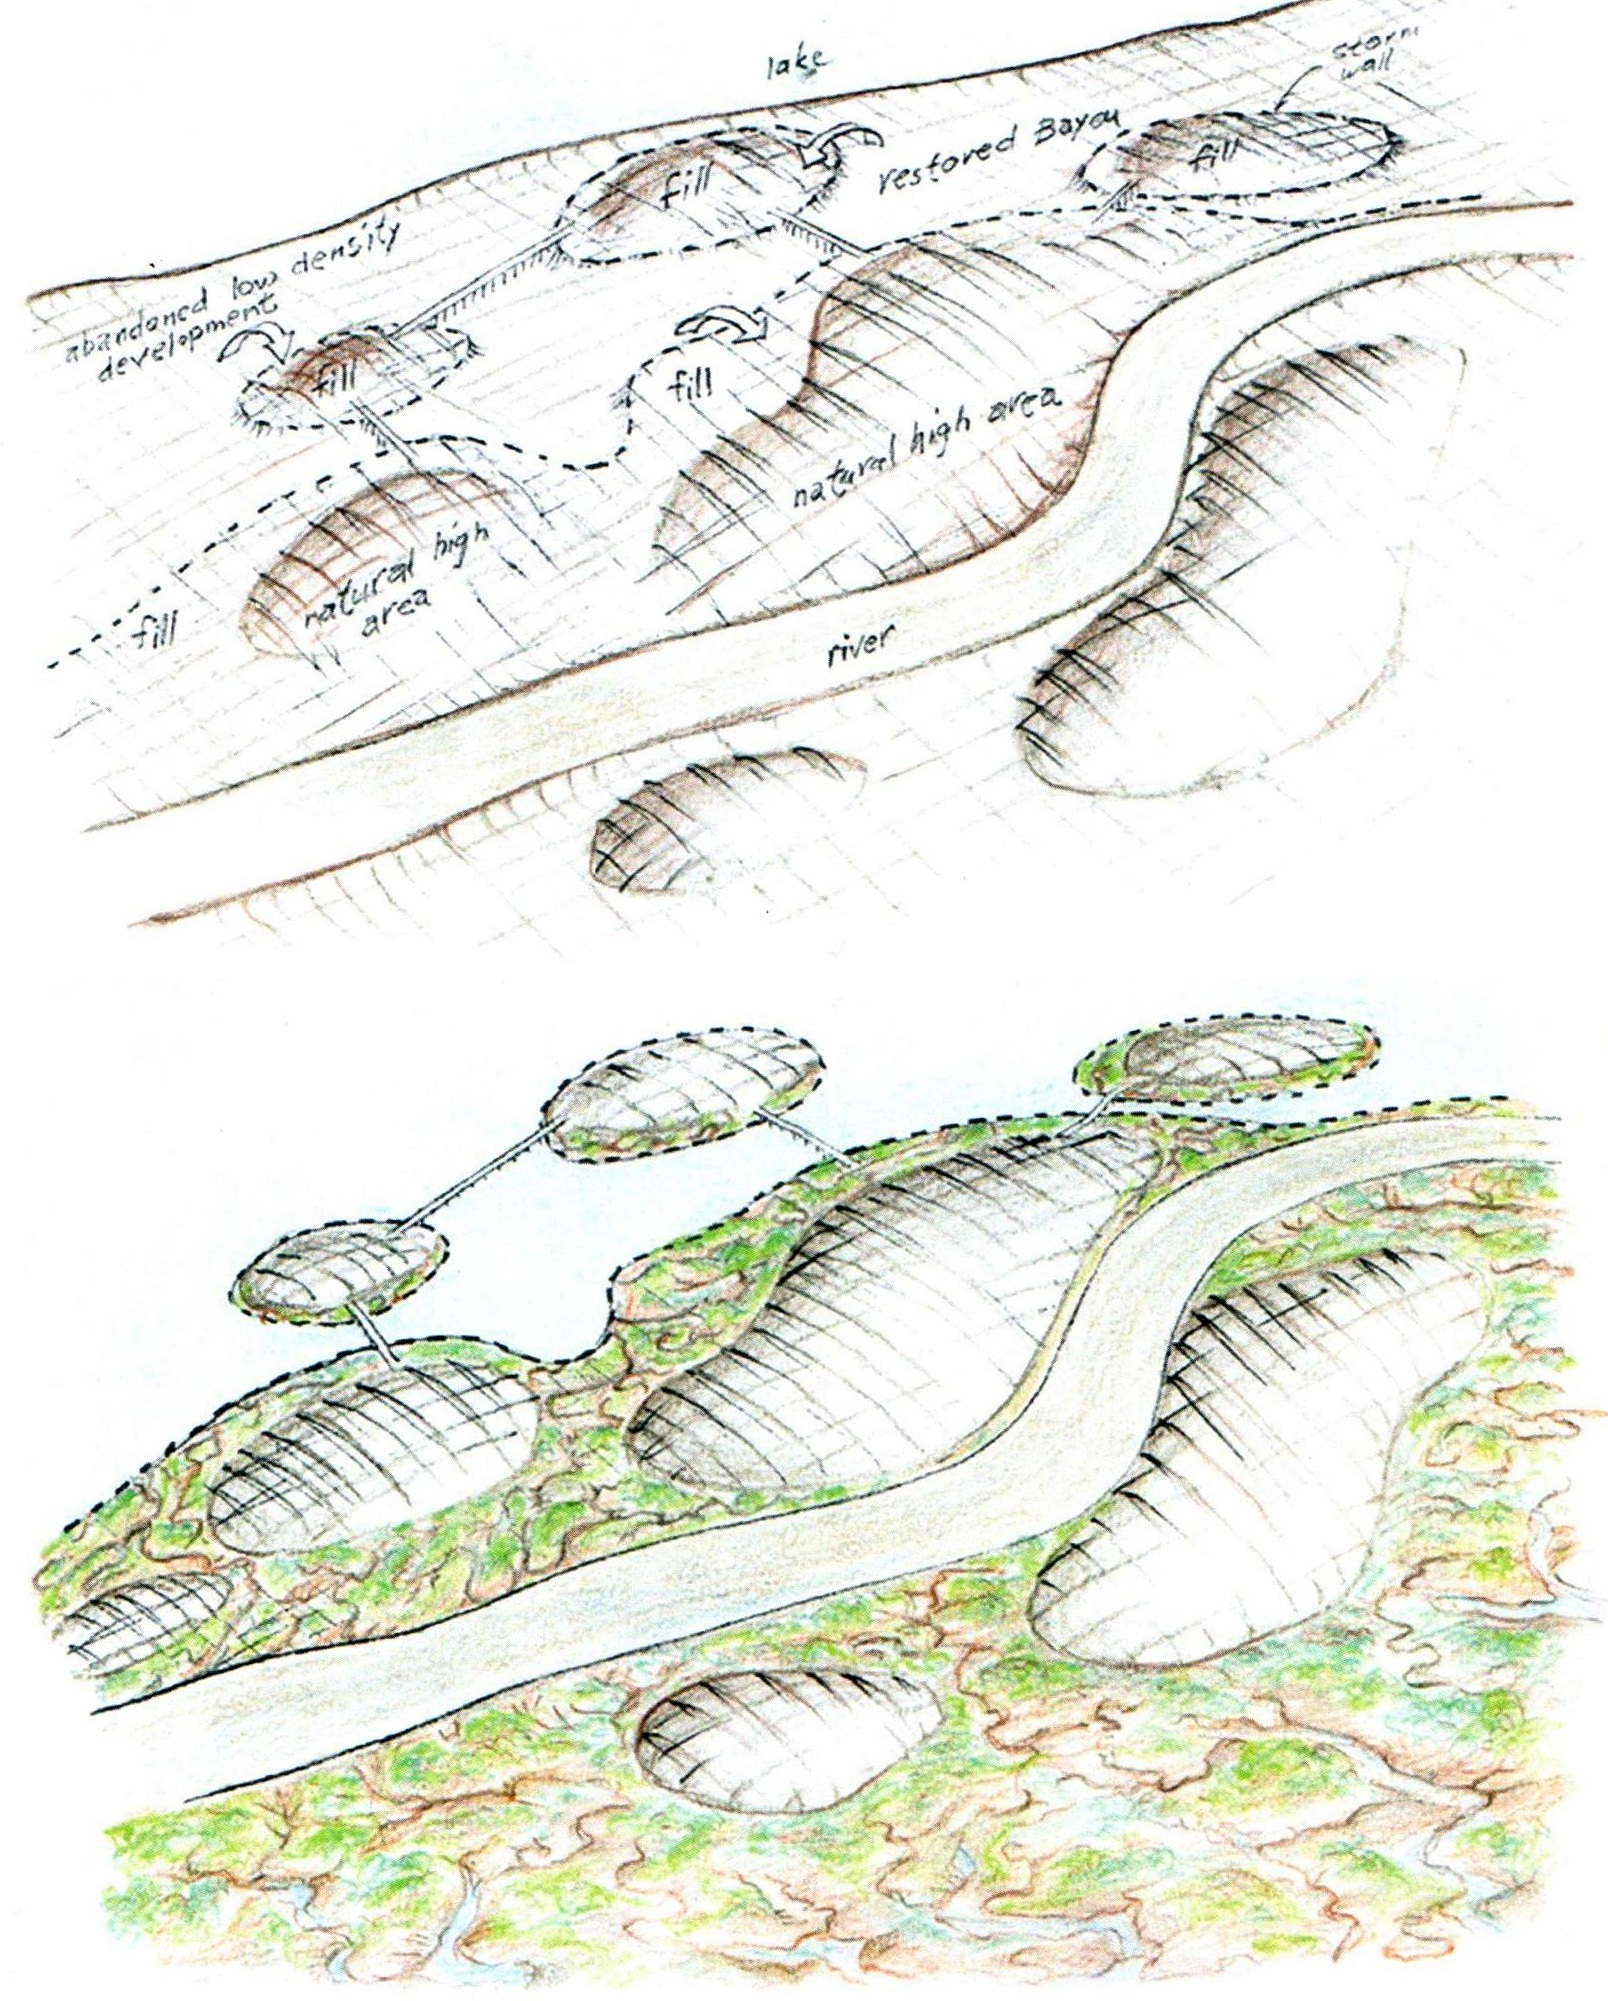 A generalized model for elevating cities and restoring natural landscapes (all drawings by Richard Register)